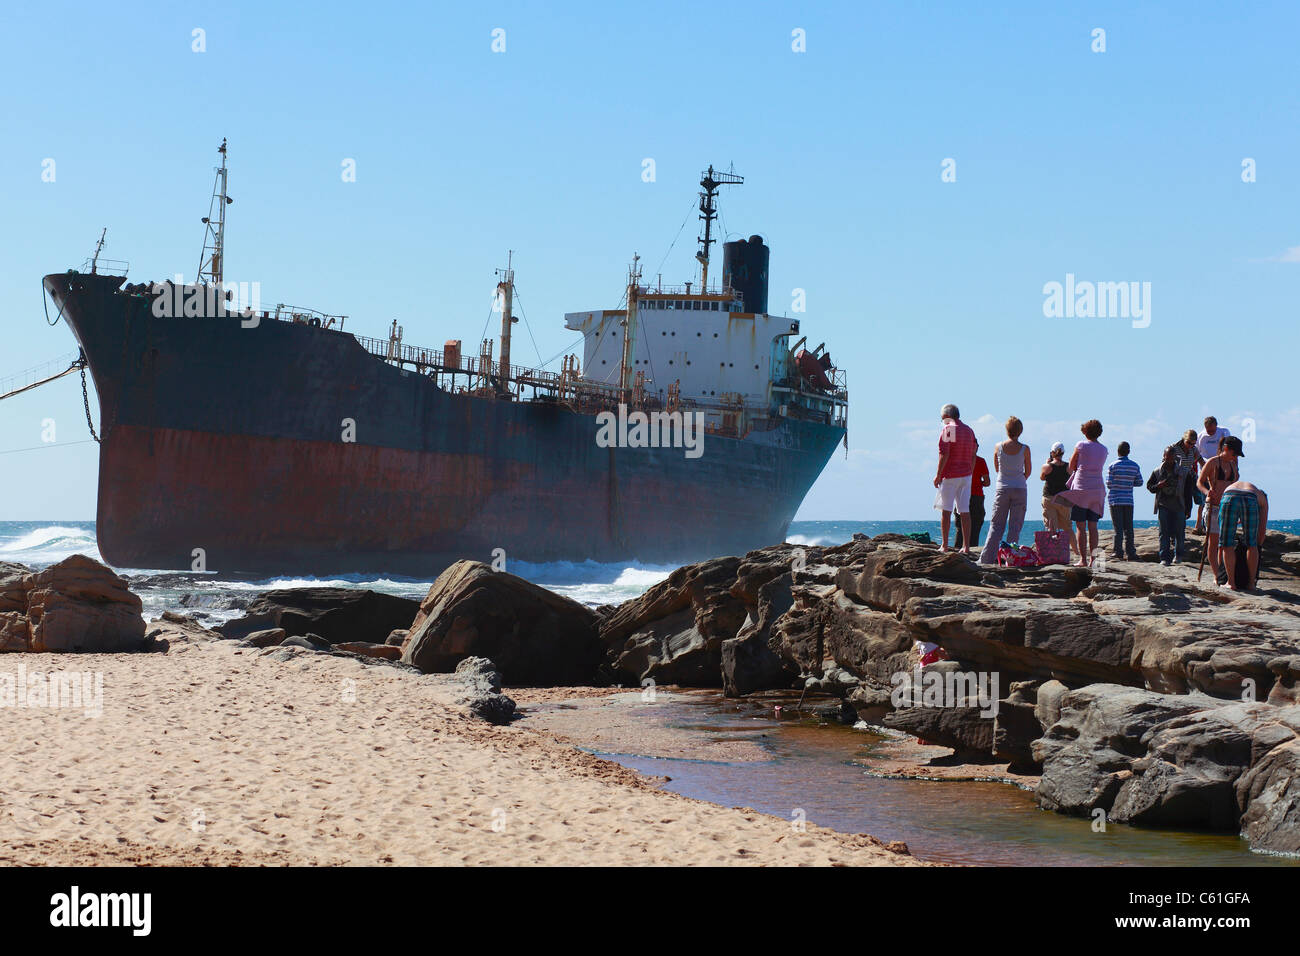 Interested onlookers gaze at the tanker Phoenix, aground on a rocky shelf at Sheffield Beach, KwaZulu Natal, South - Stock Image